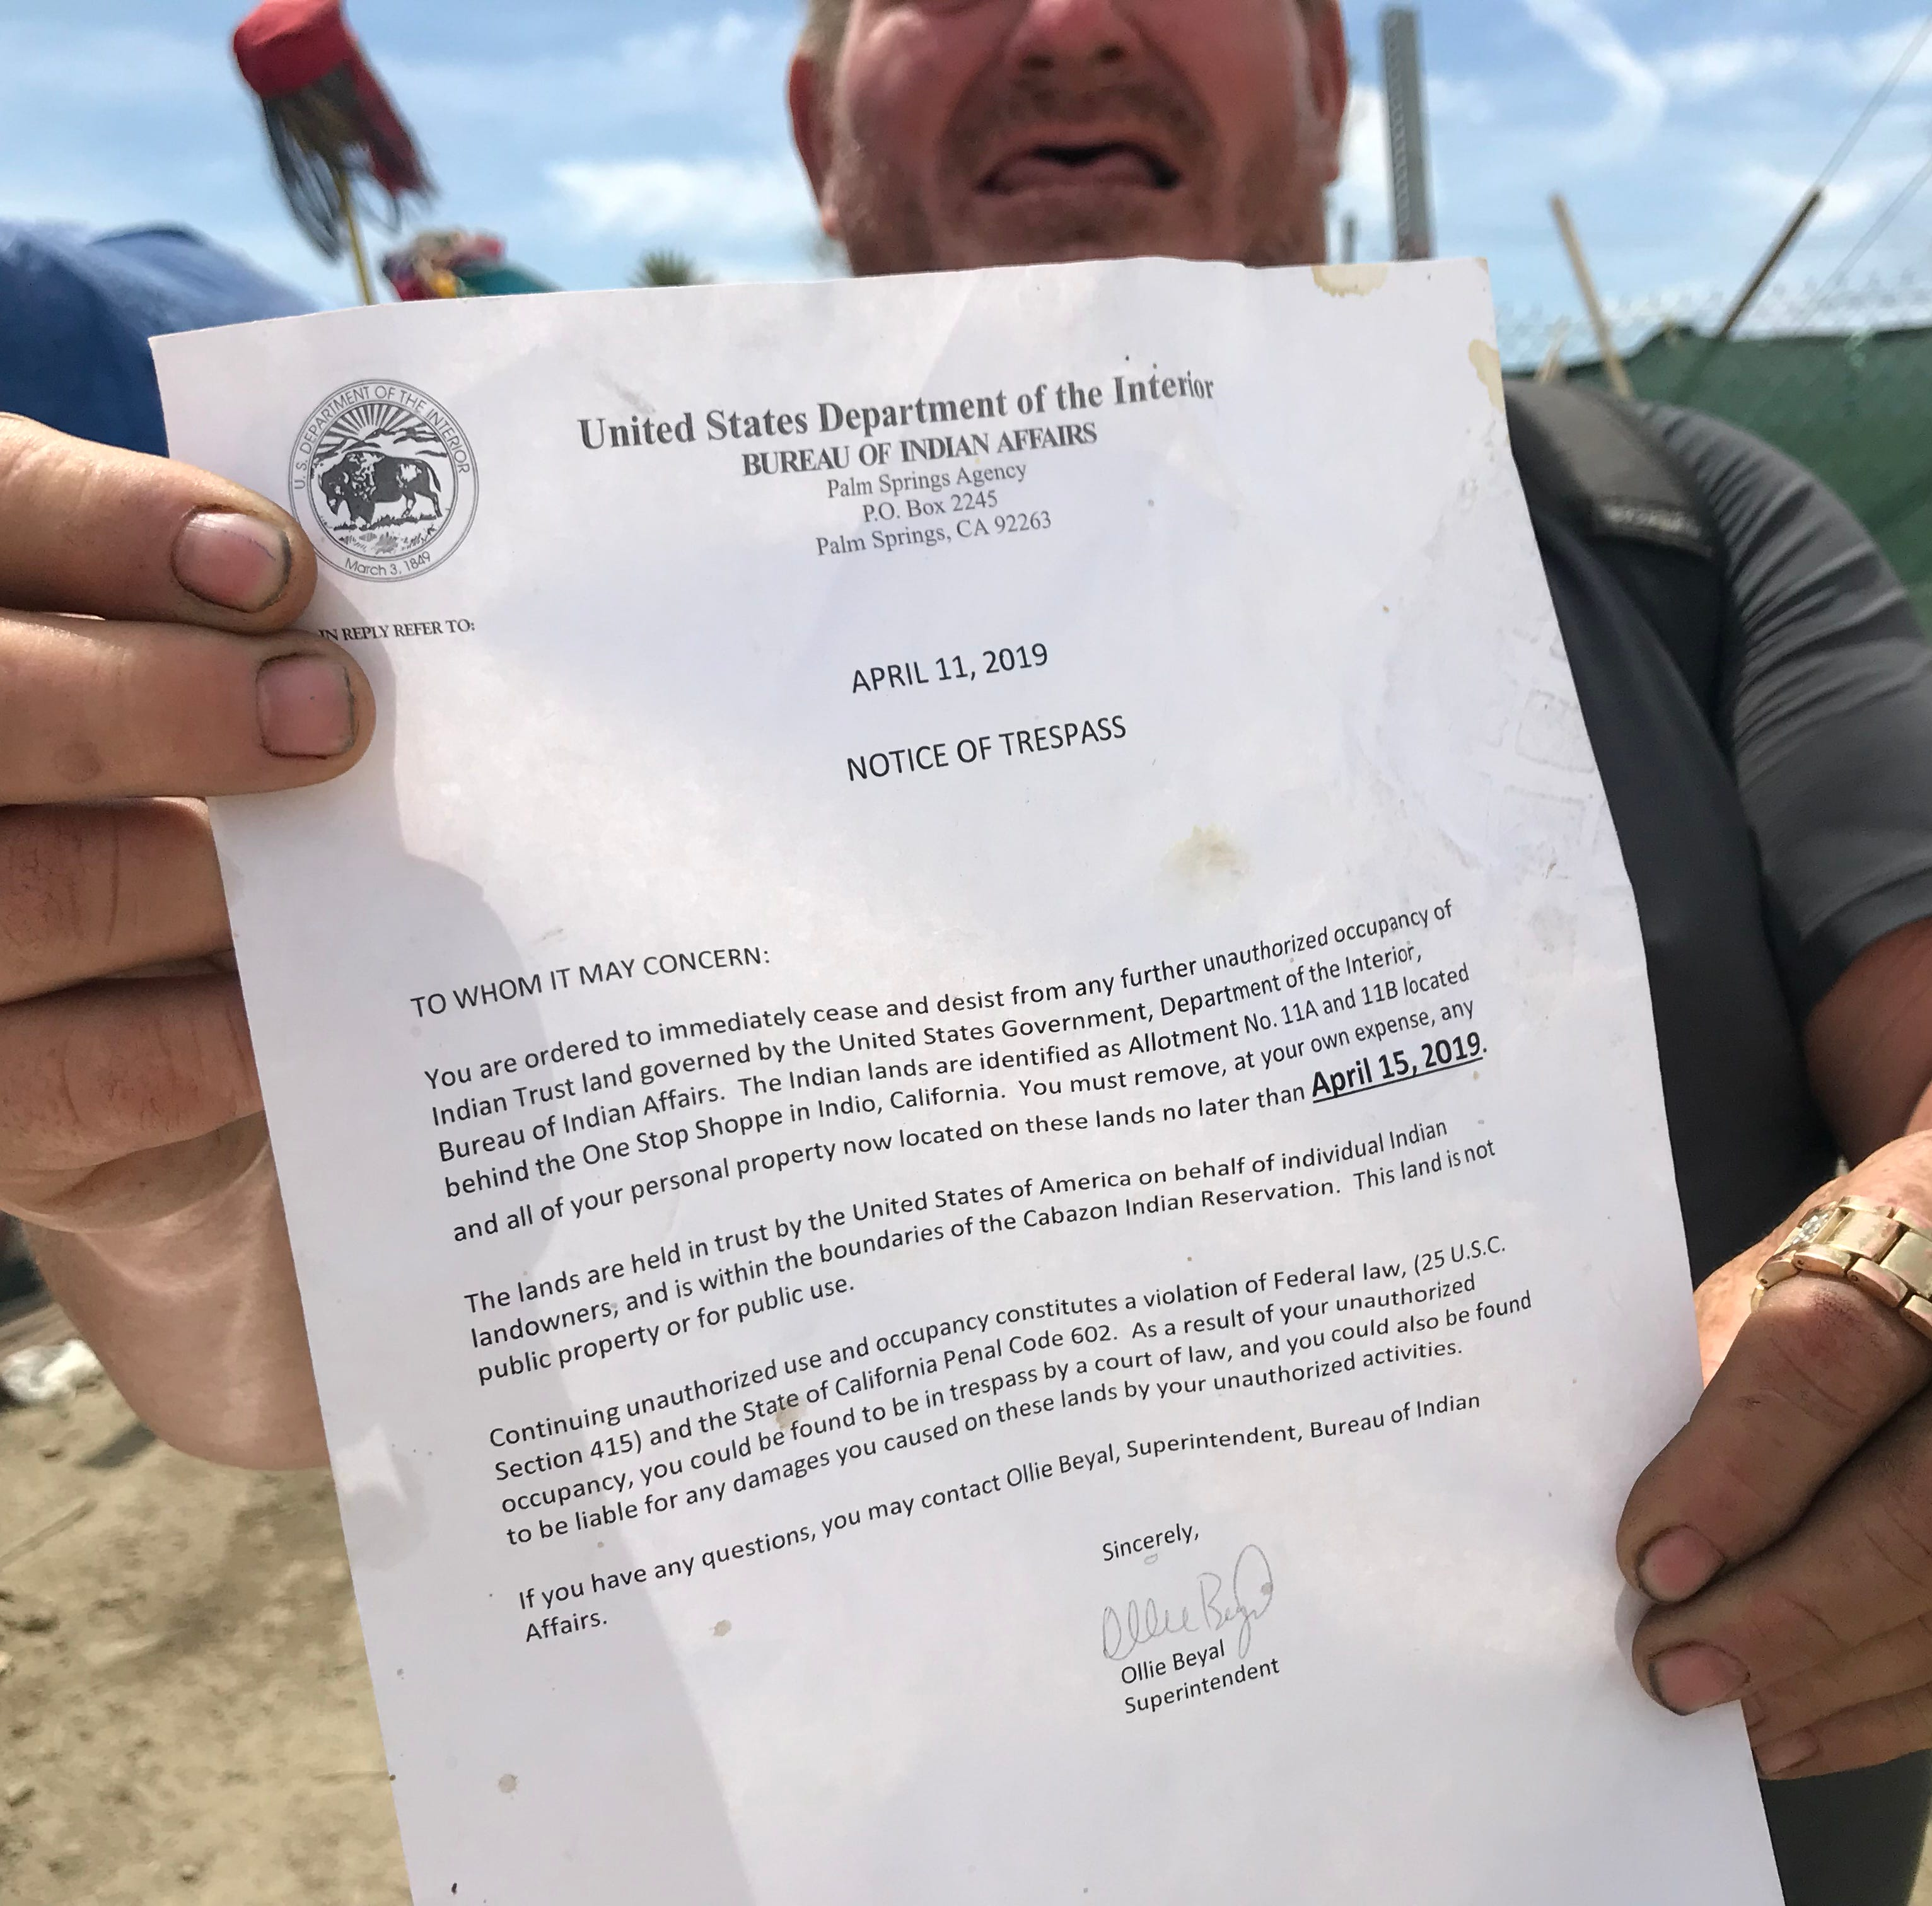 Homeless encampment 5 miles from Coachella music fest to be evicted this week